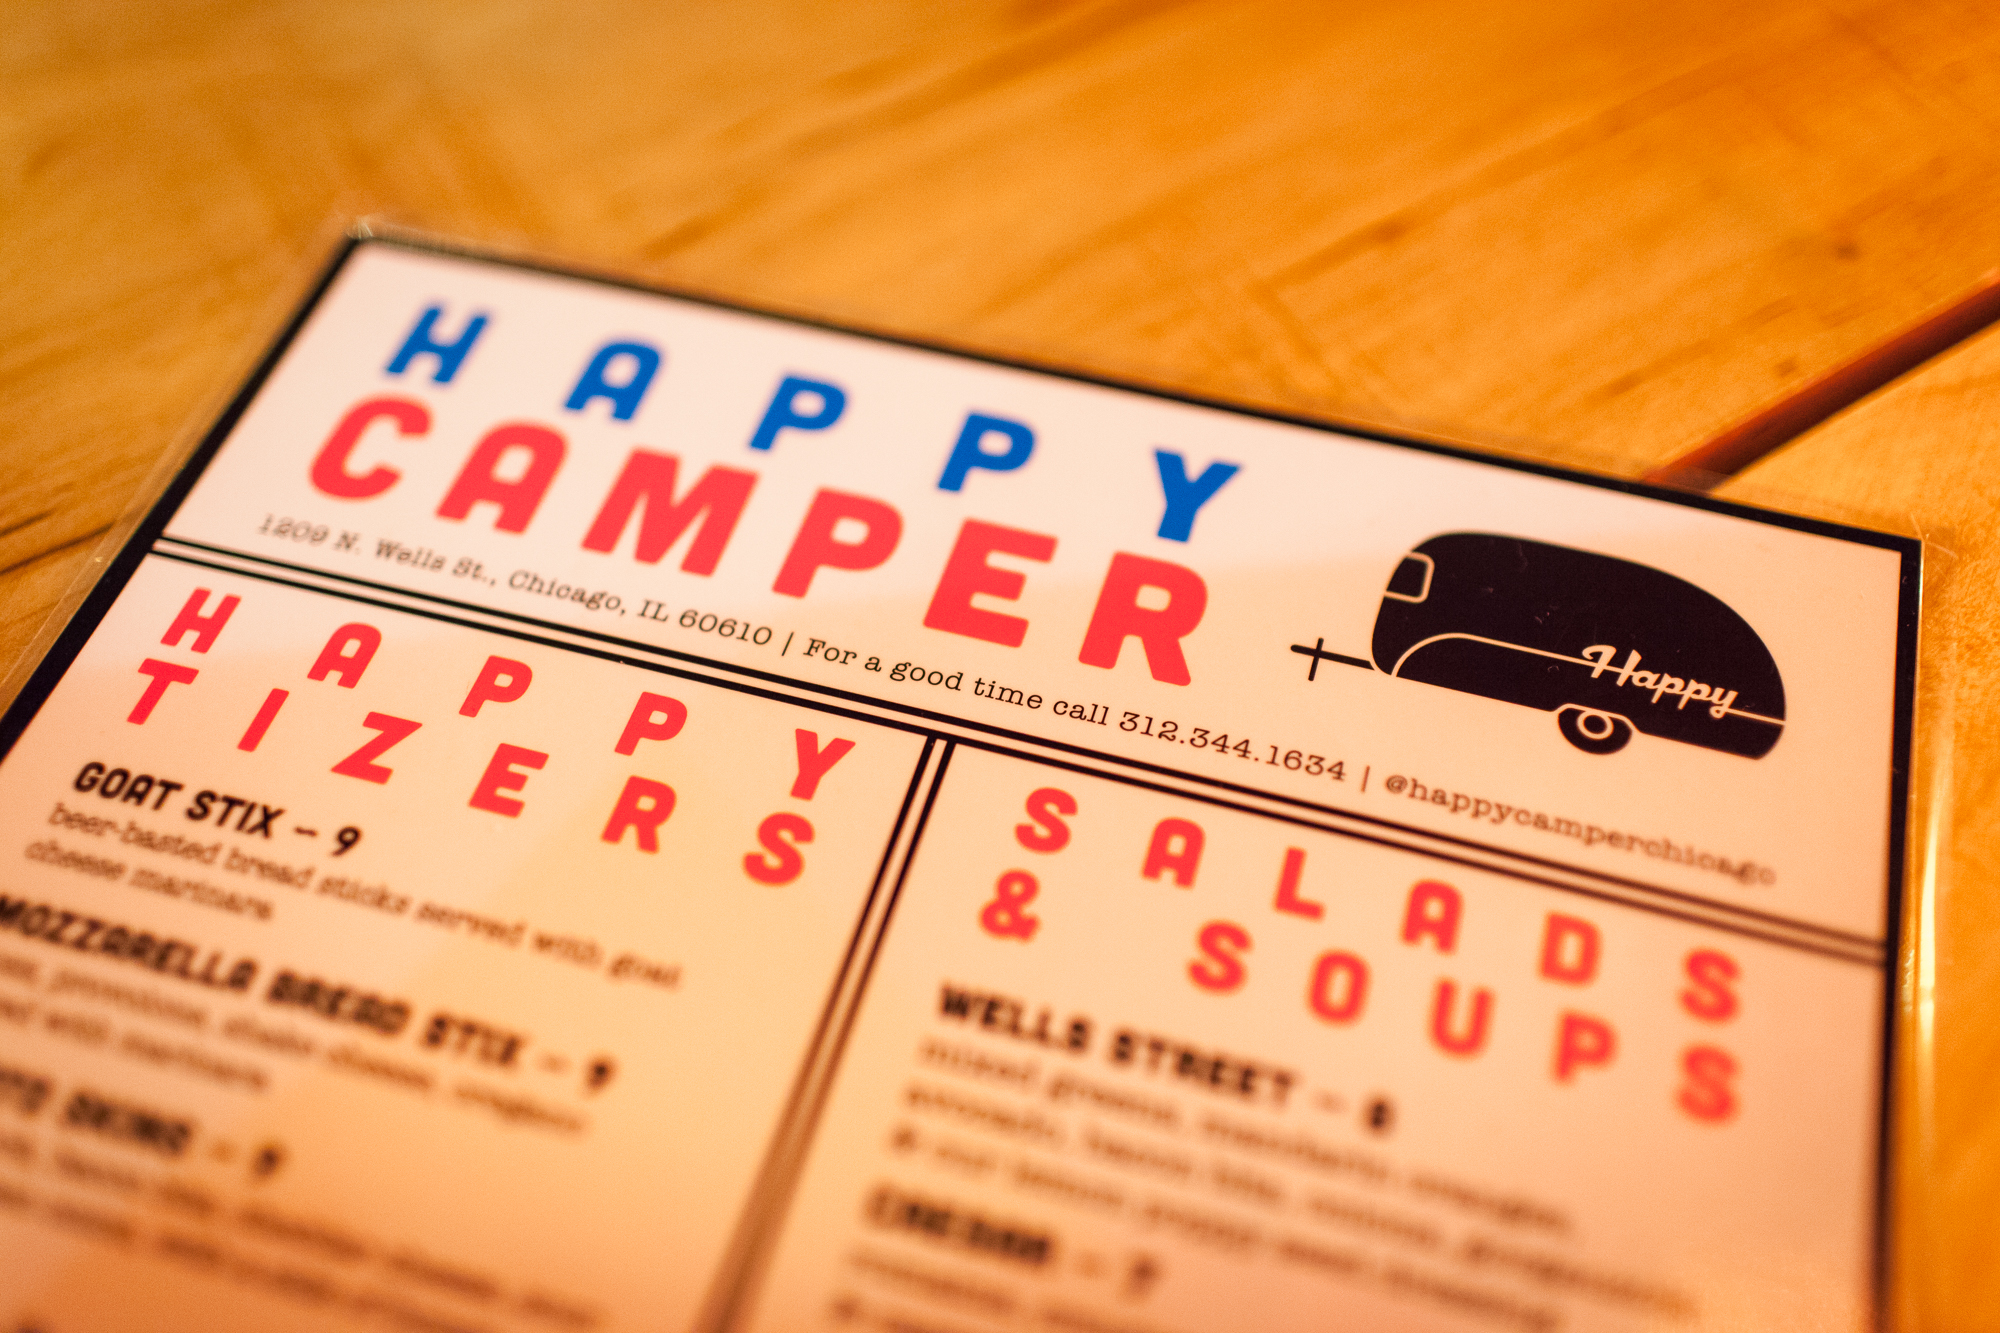 HAPPY CAMPER-26.jpg